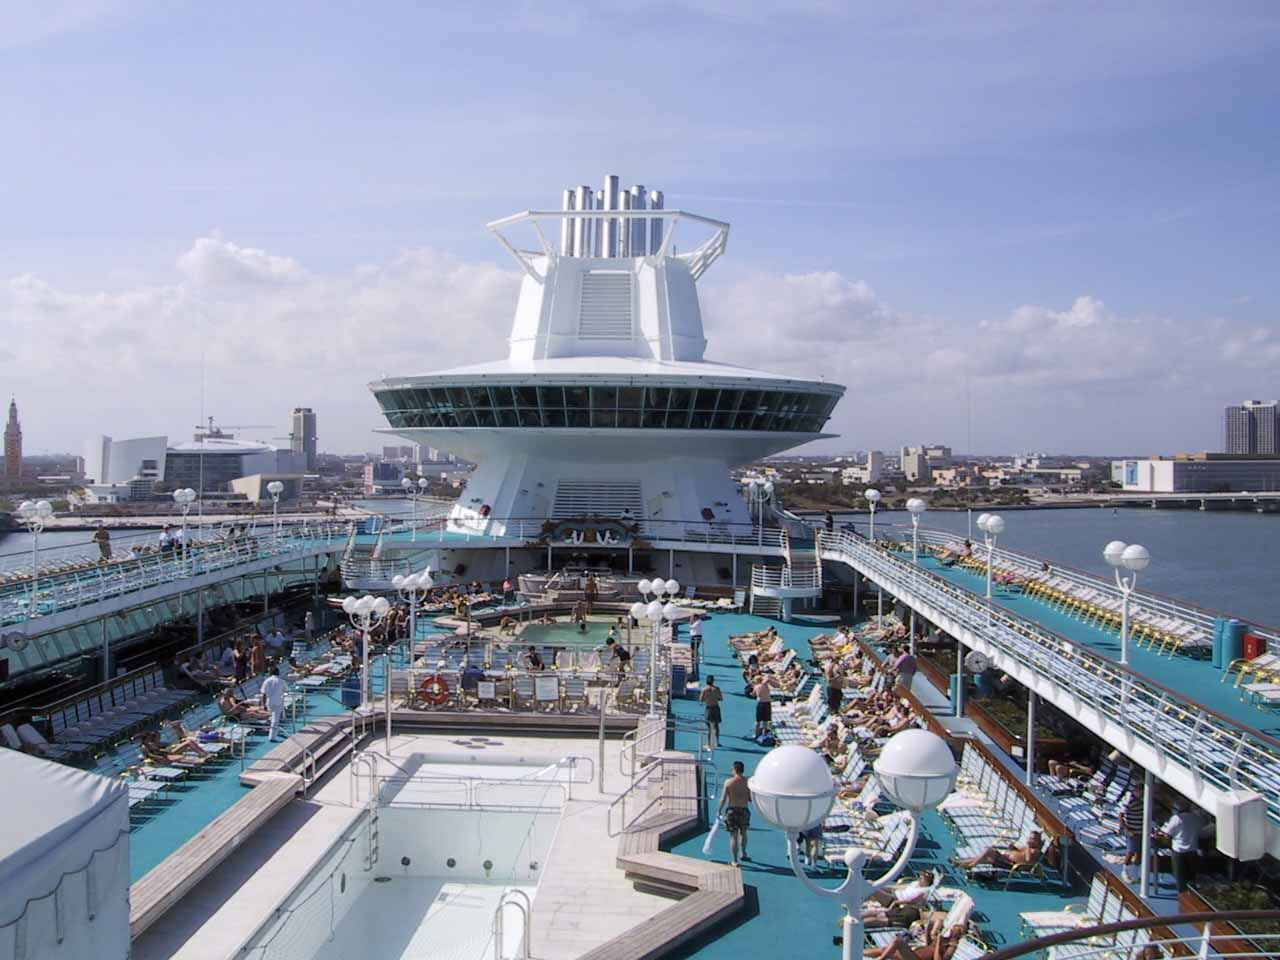 On the Deck of Majesty of the Seas in Miami